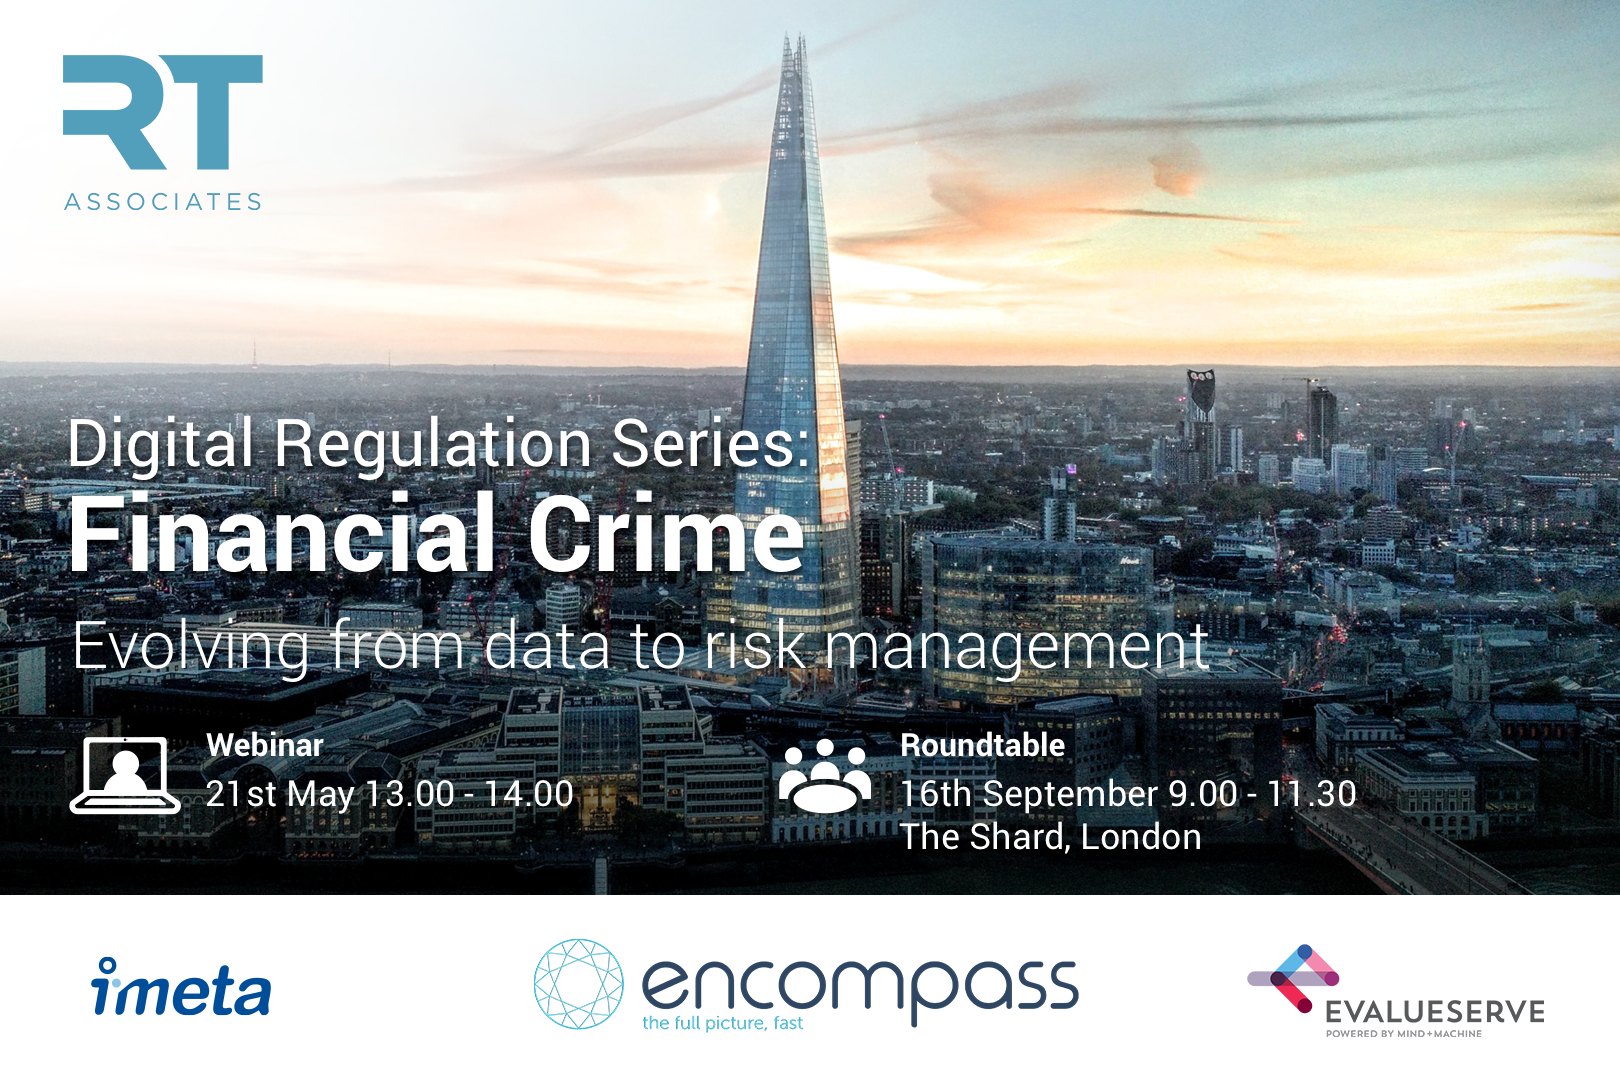 Digital Regulation Series KYC - Evolving from data to risk management